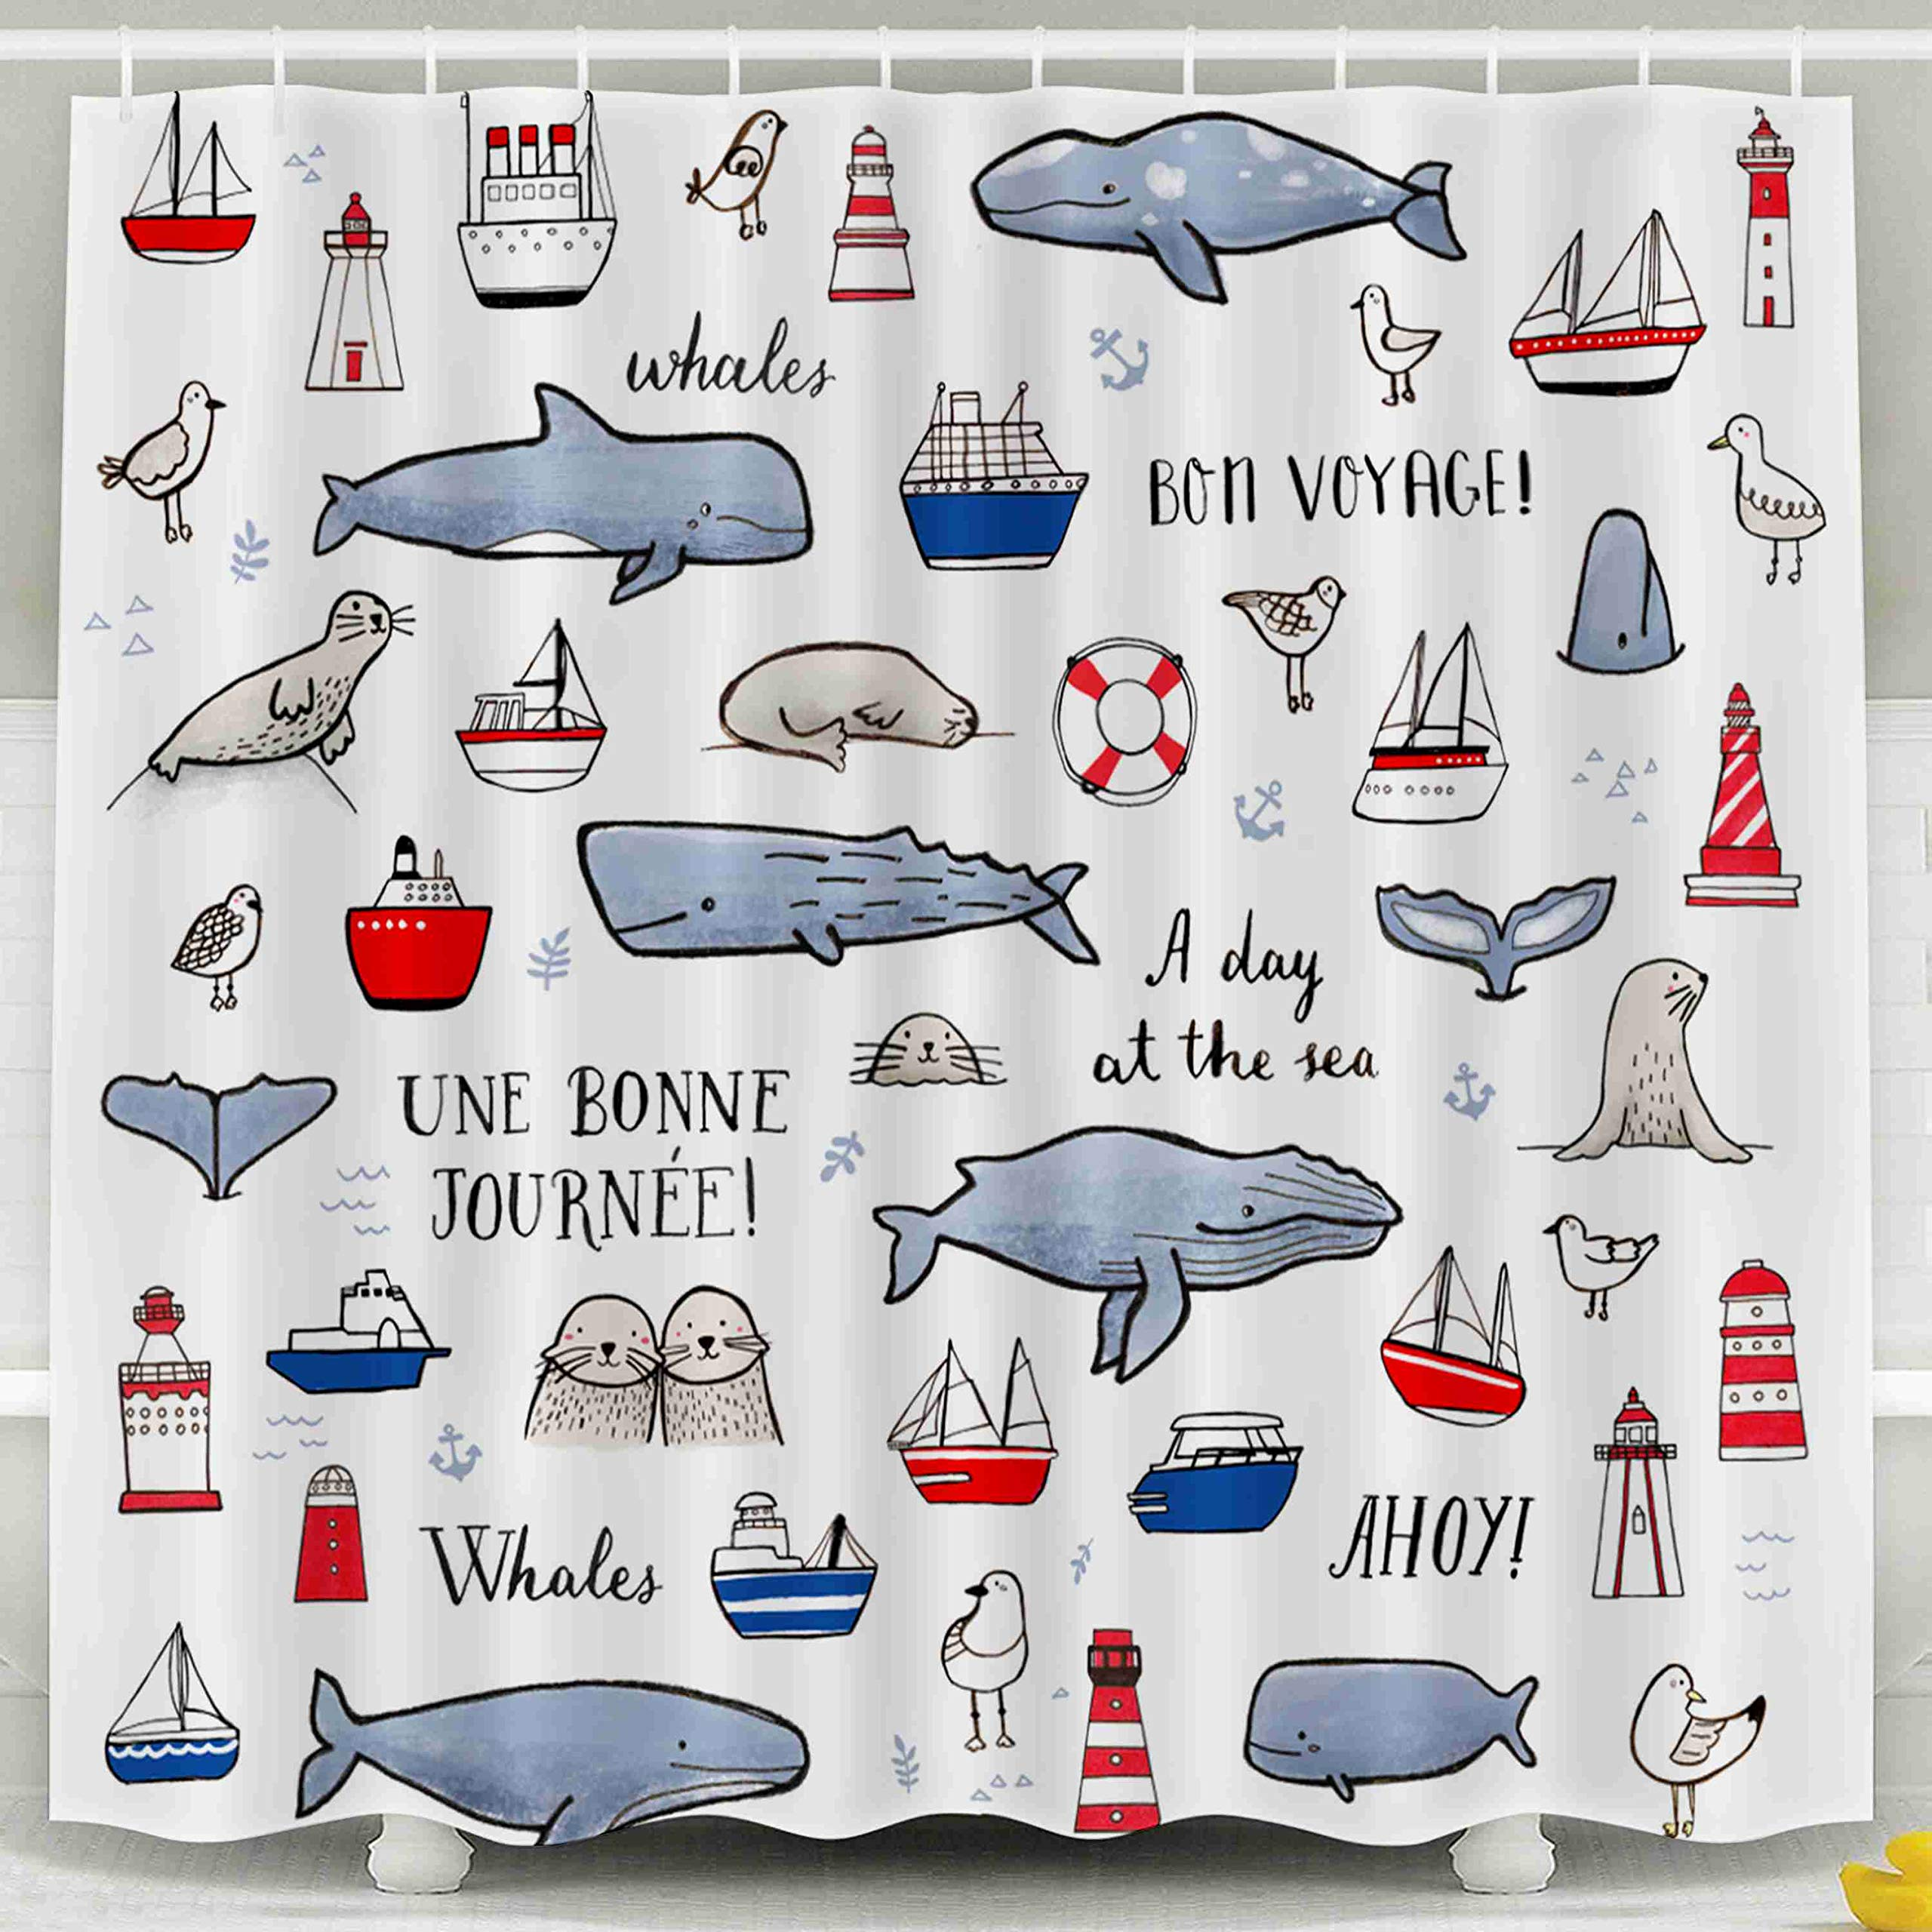 Jacrane Waterproof Fabric Bathroom Clear Shower Curtains Liner with Hooks Icons Boats Whales Lighthouses Suitable Greeting Card Surface 72X72Inch,Pink Green